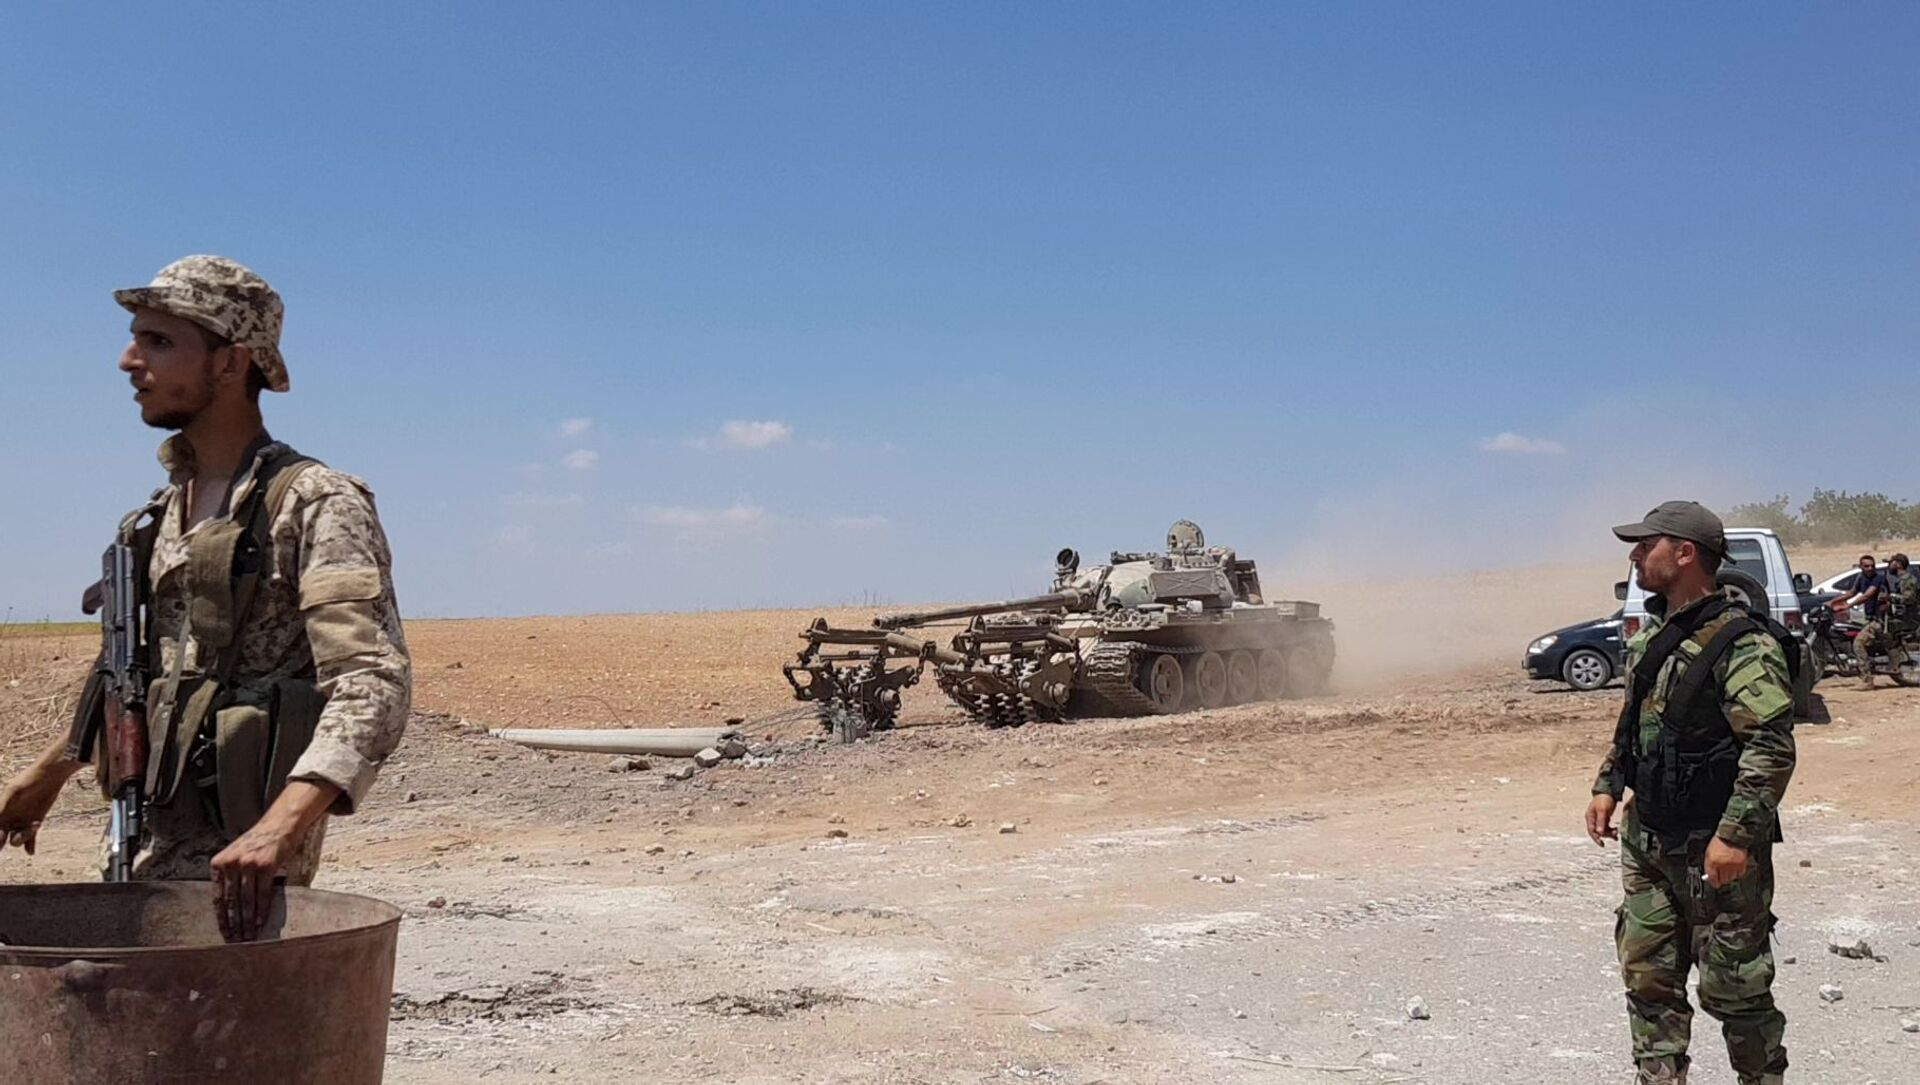 The Syrian army conducts mine clearance outside the town of Khan Sheikhoun after its liberation, Idlib province, Syria - Sputnik International, 1920, 04.08.2021